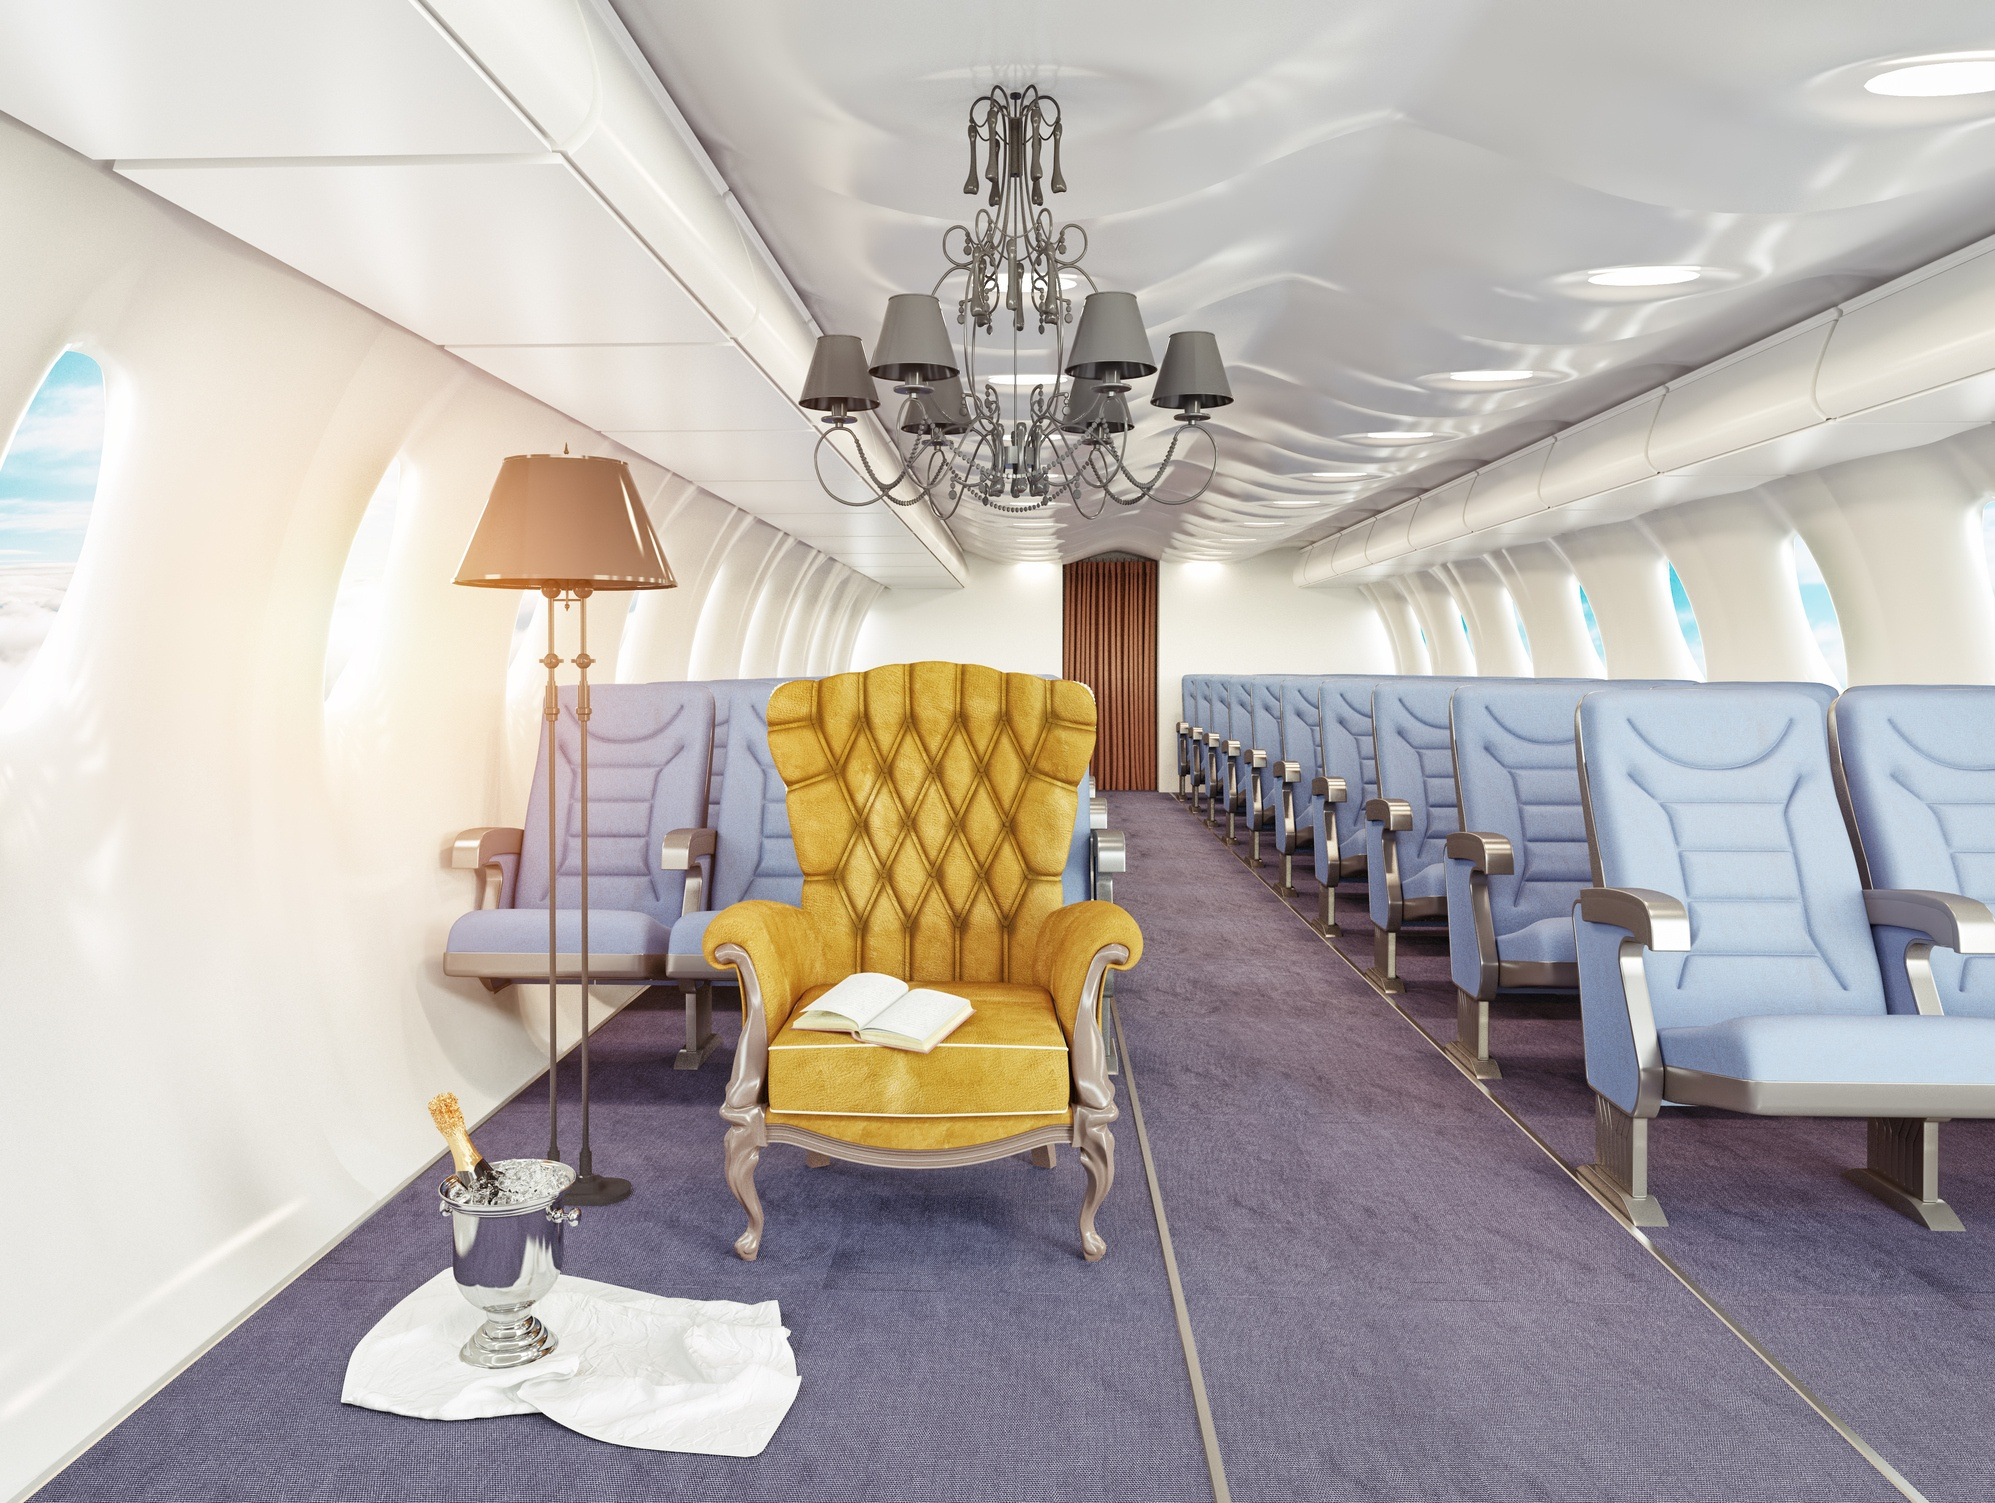 luxury armchair in row of airplane